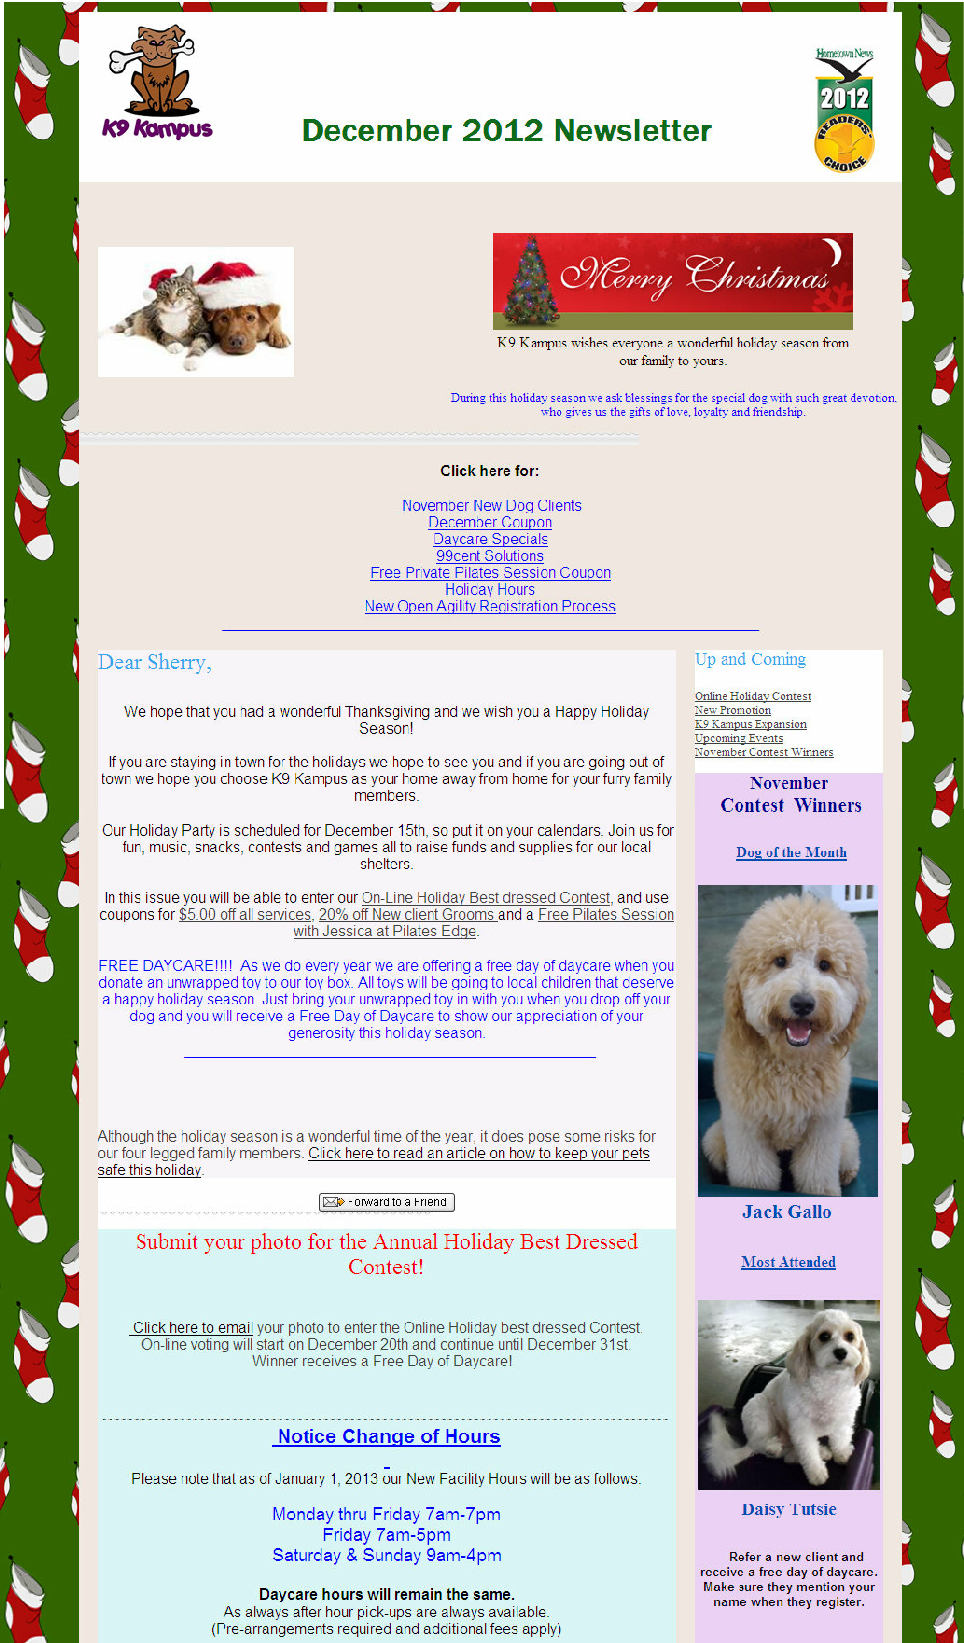 wp0d466747_06 Sample Daycare December Newsletter Templates on november monthly, for march home, creative arts, for parents summer, march month, for august, for december print out, about holidays off, article examples for,